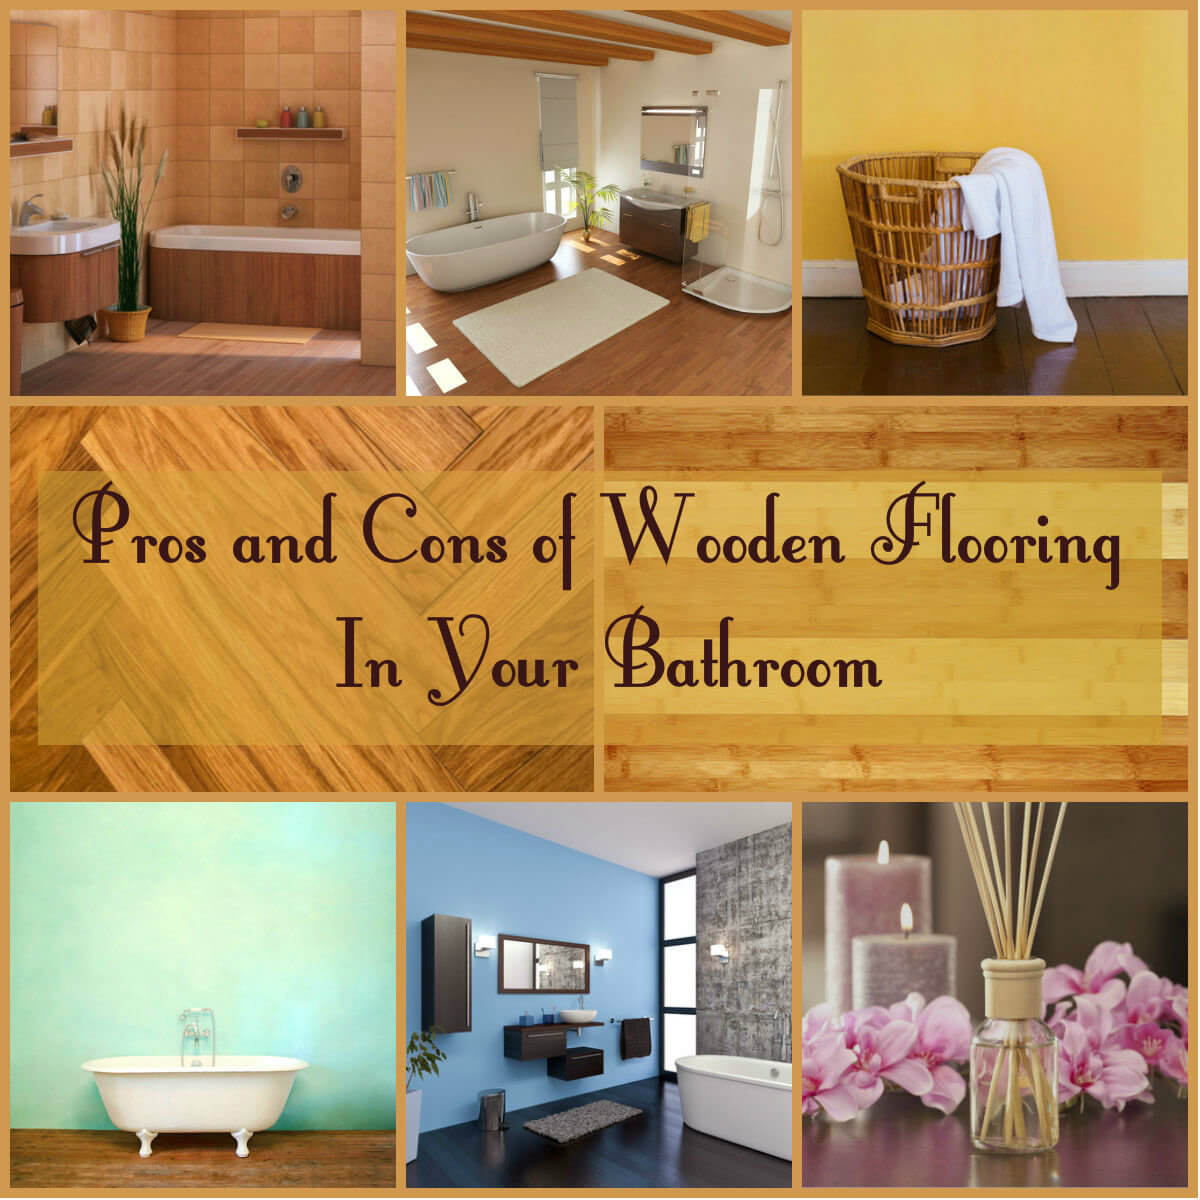 Pros and cons of wooden flooring in your bathroom for Cherry flooring pros and cons